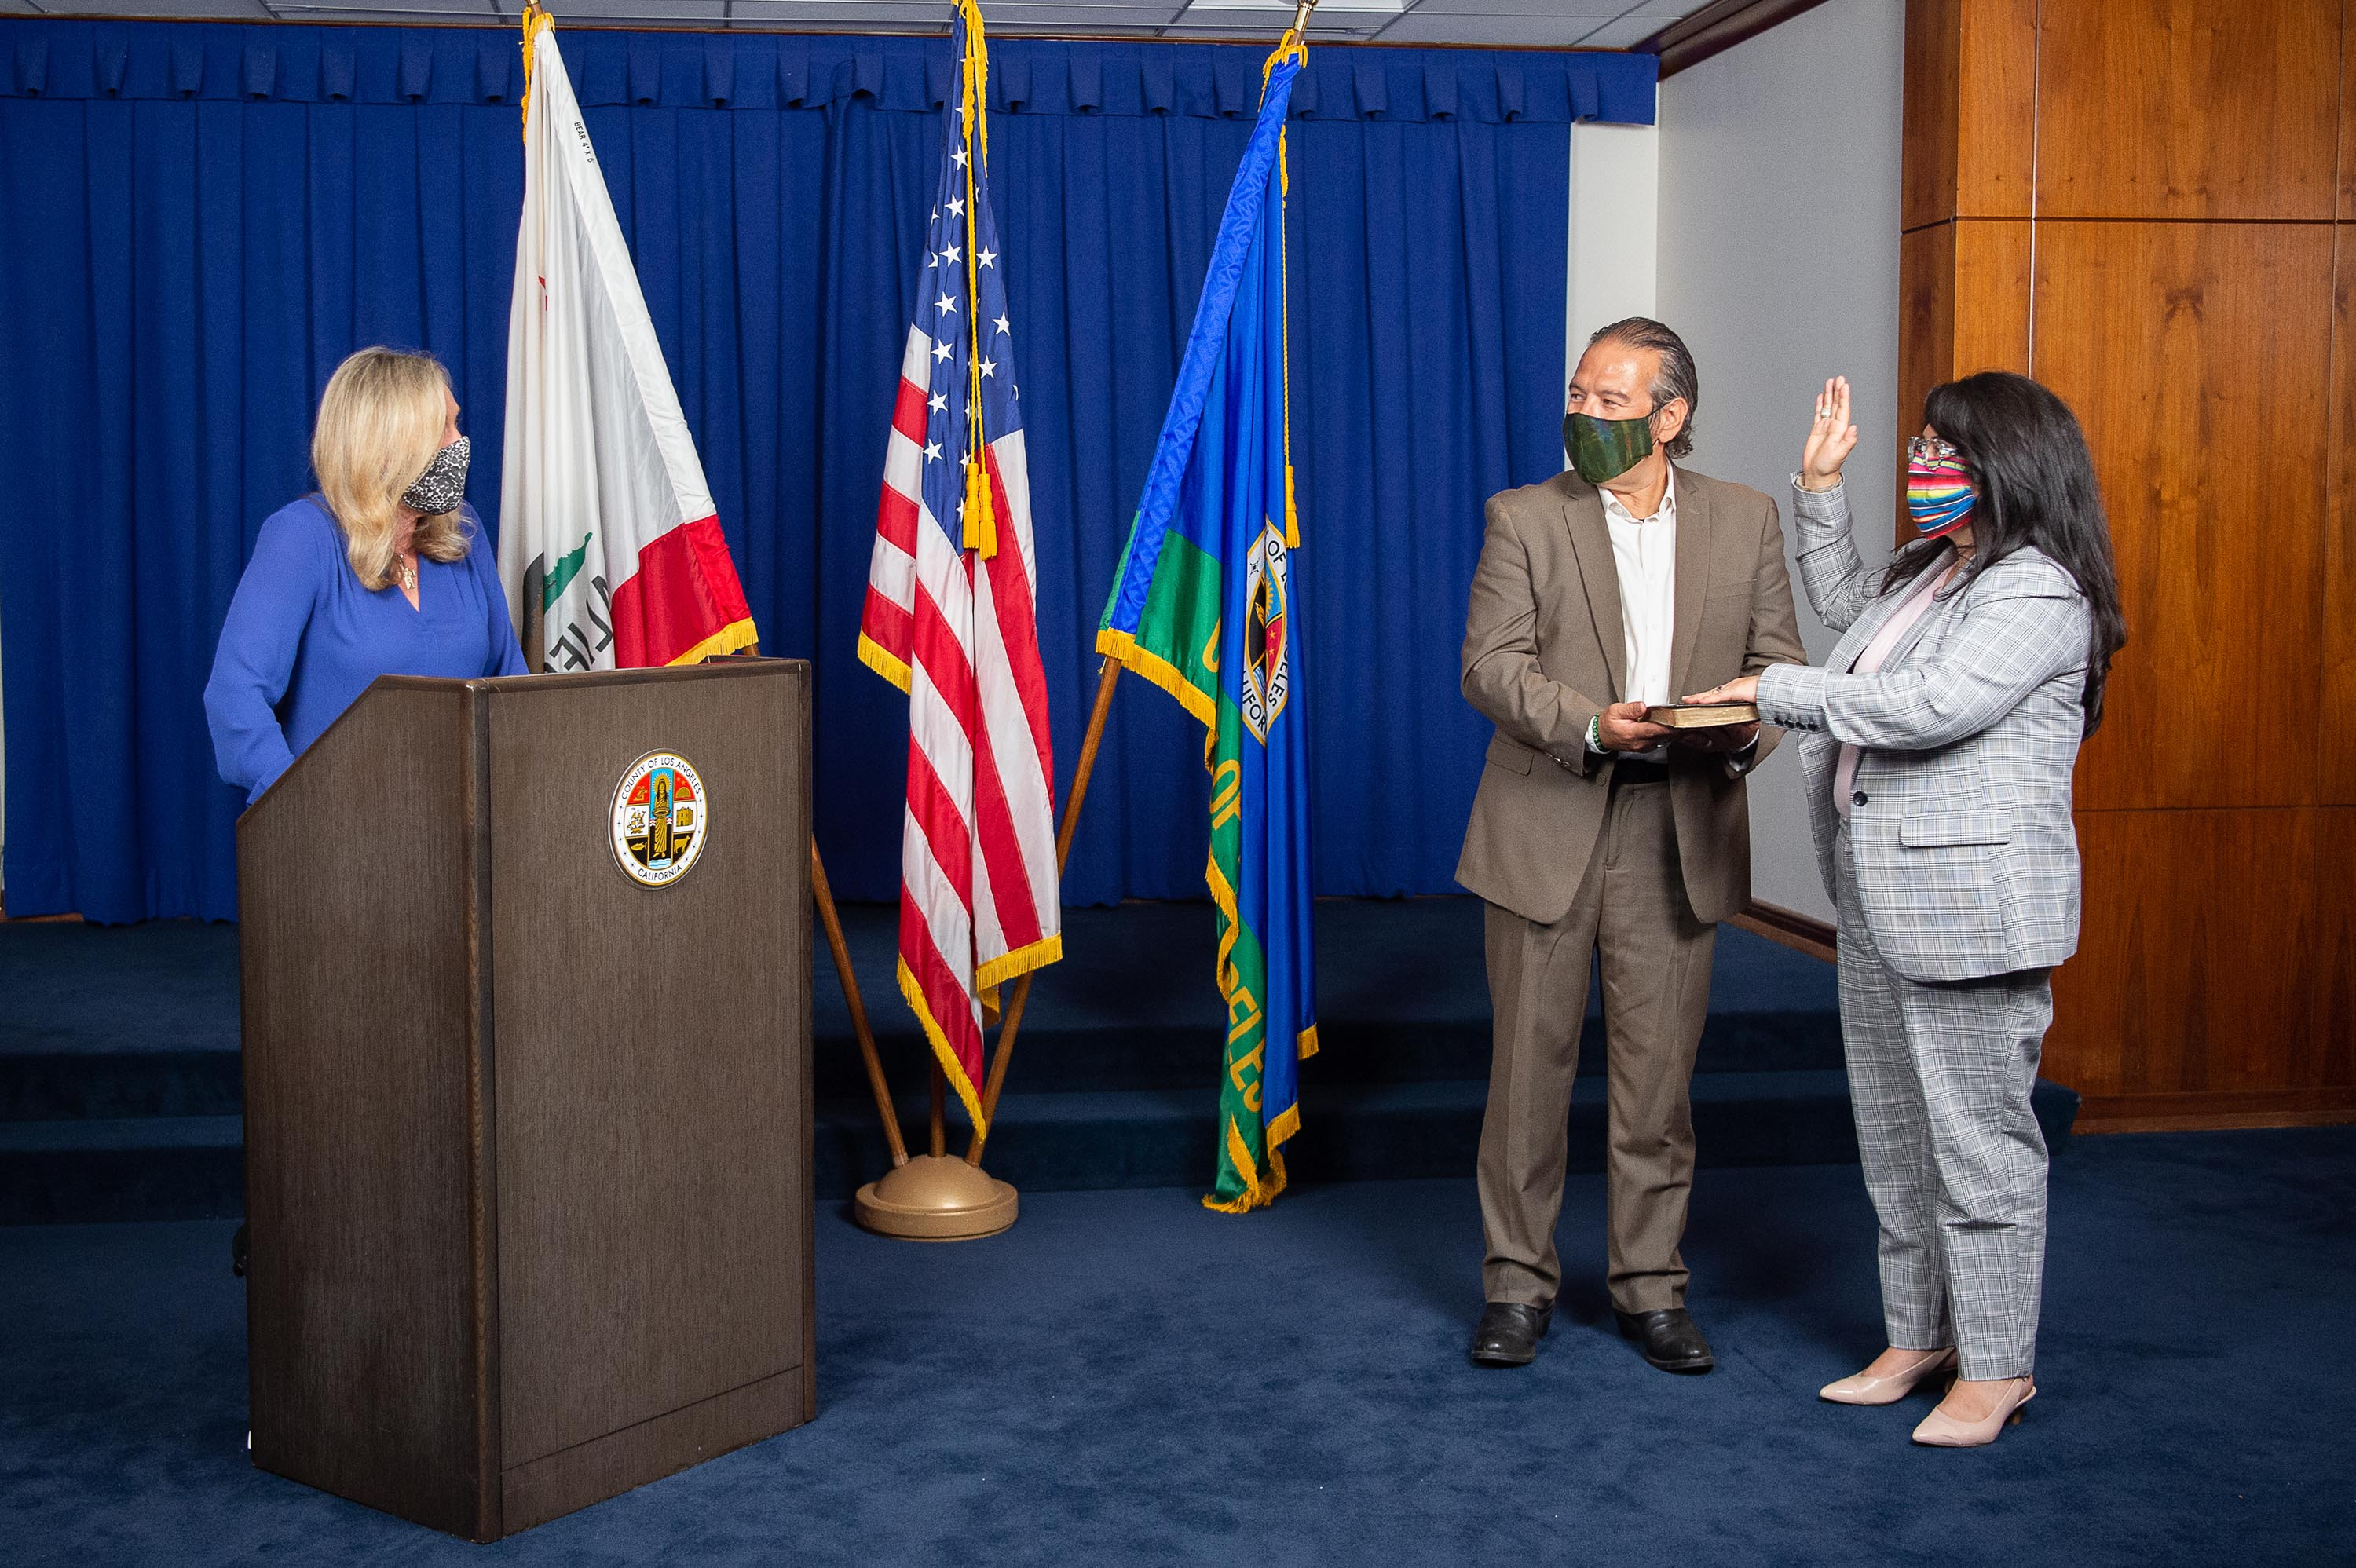 Executive Office<br>  <b>July 7, 2020 - Norma E. Garcia, Director, Parks and Recreation swearing in.</b><br>  <i>Photo by Bryan Chan / Board of Supervisors</i>